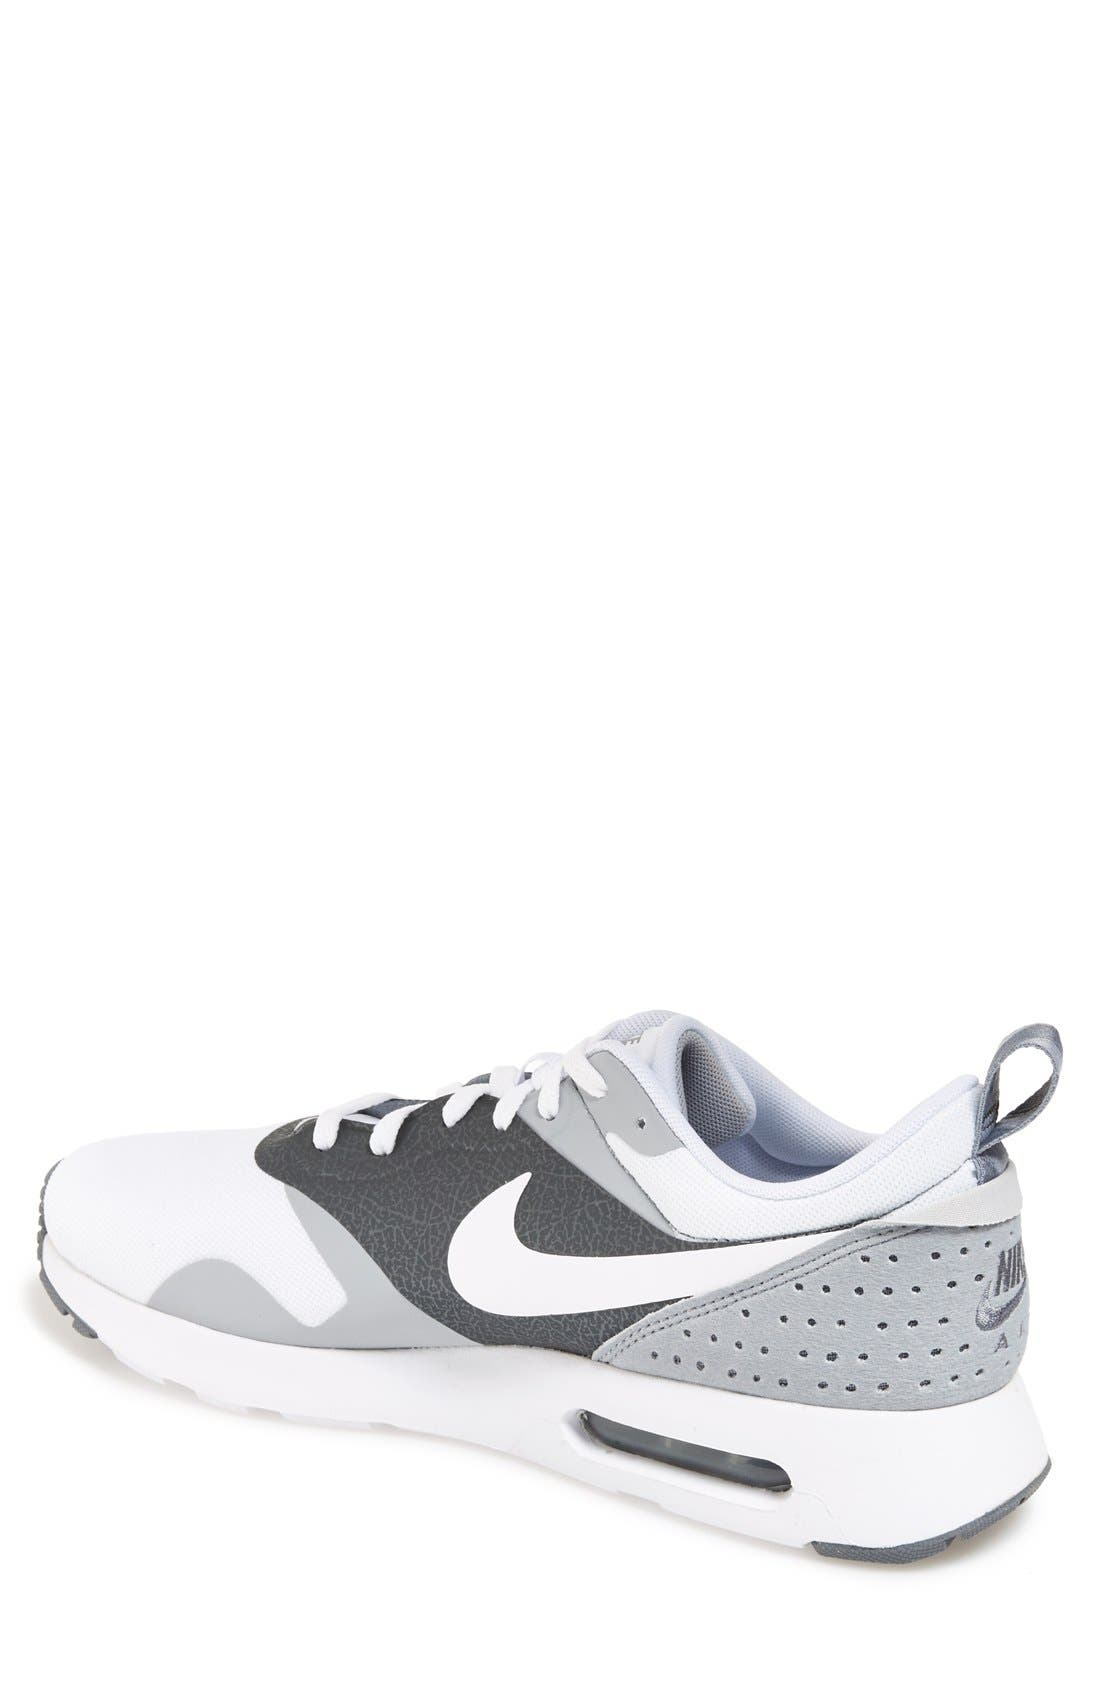 ,                             'Air Max Tavas' Sneaker,                             Alternate thumbnail 135, color,                             100